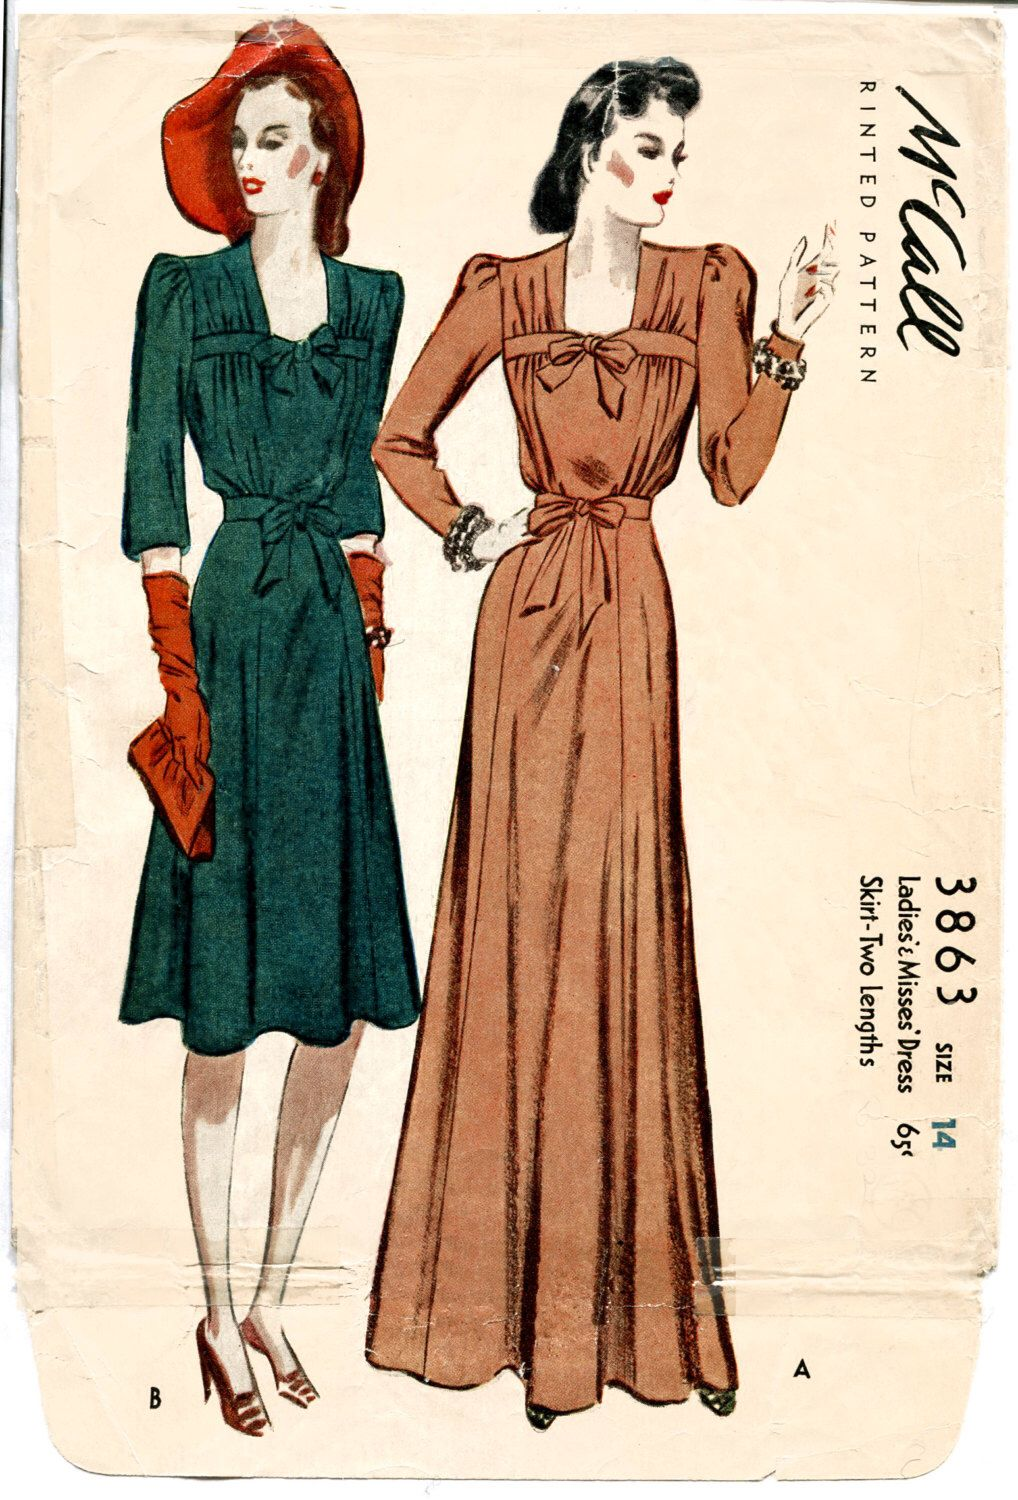 1940 Vintage Sewing Pattern 1940s 40s Evening Gown Cocktail Etsy Vintage Clothes Patterns Vintage Outfits Vintage Sewing Patterns [ 1500 x 1018 Pixel ]